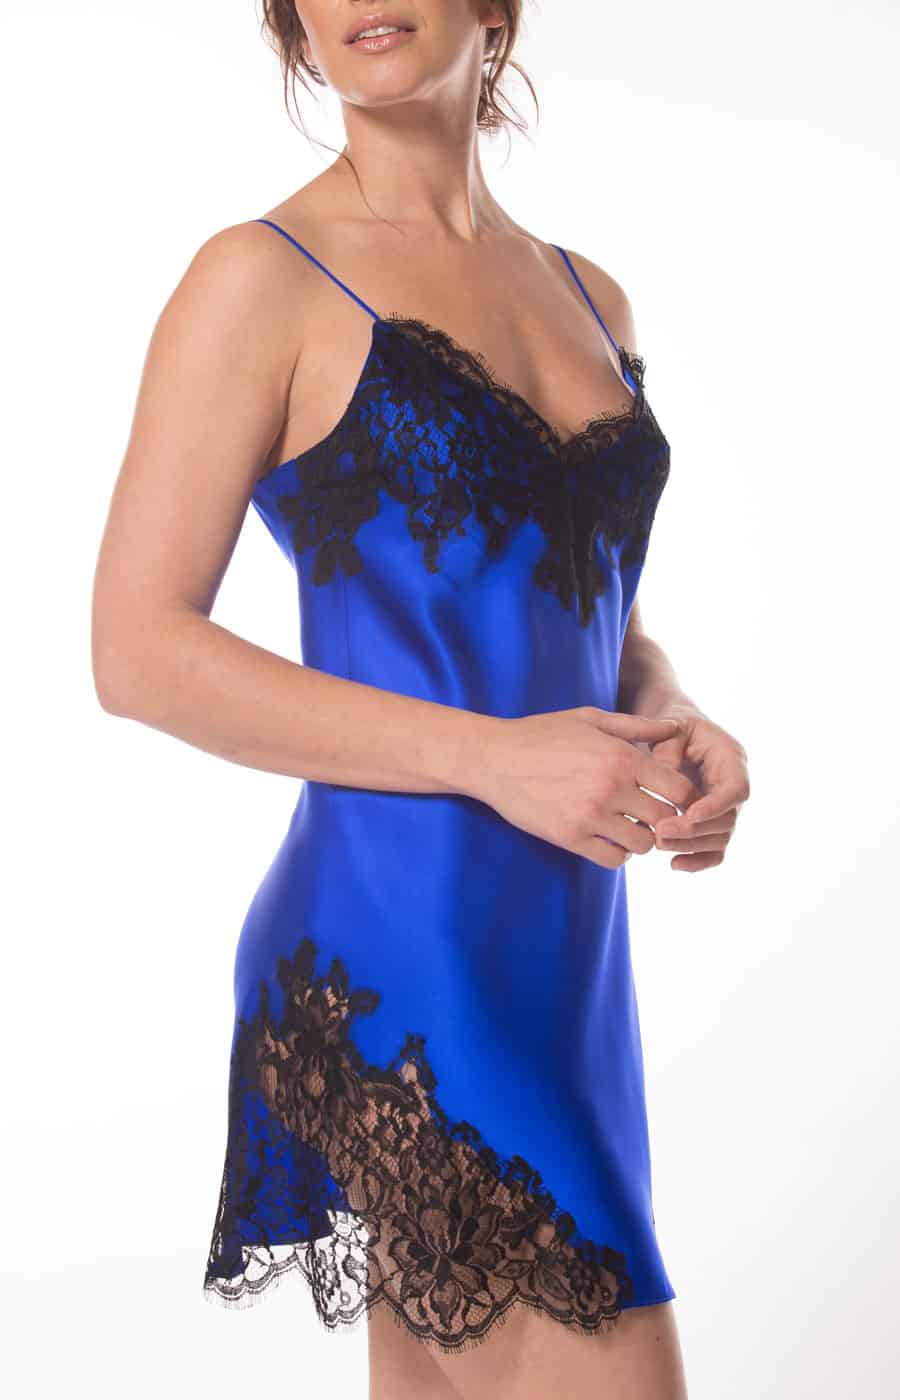 silk blue chemise with black lace is worn by a women